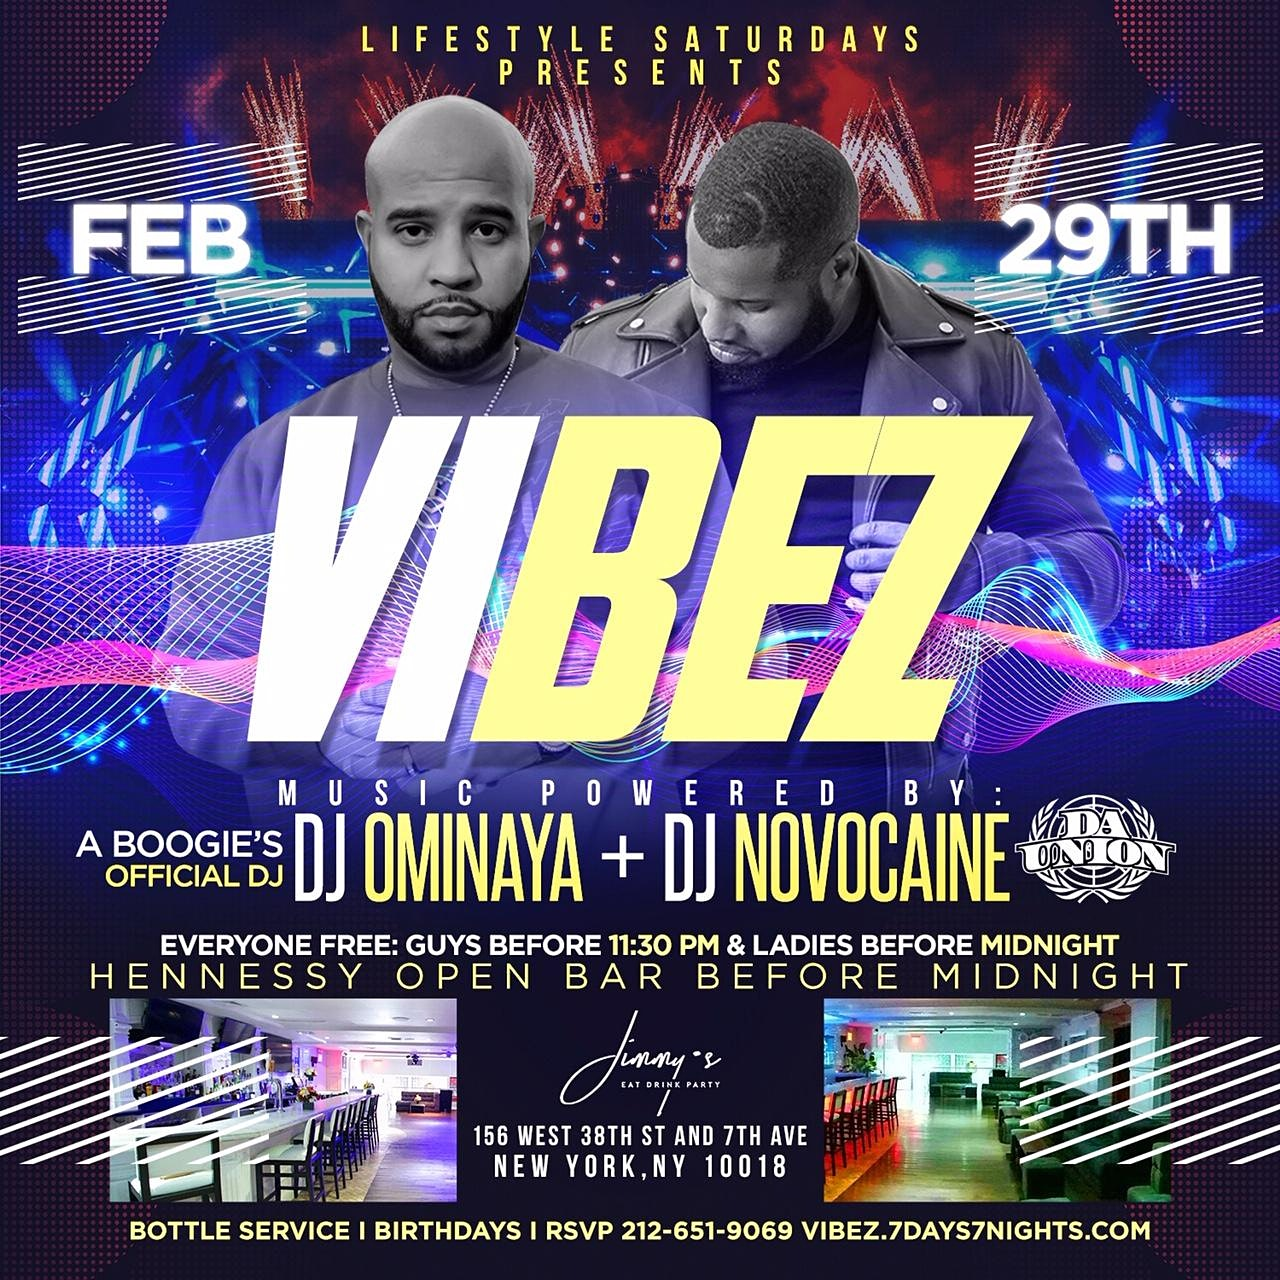 Lifestyle Saturdays Present Vibez | Open Bar + Free Entry W/RSVP